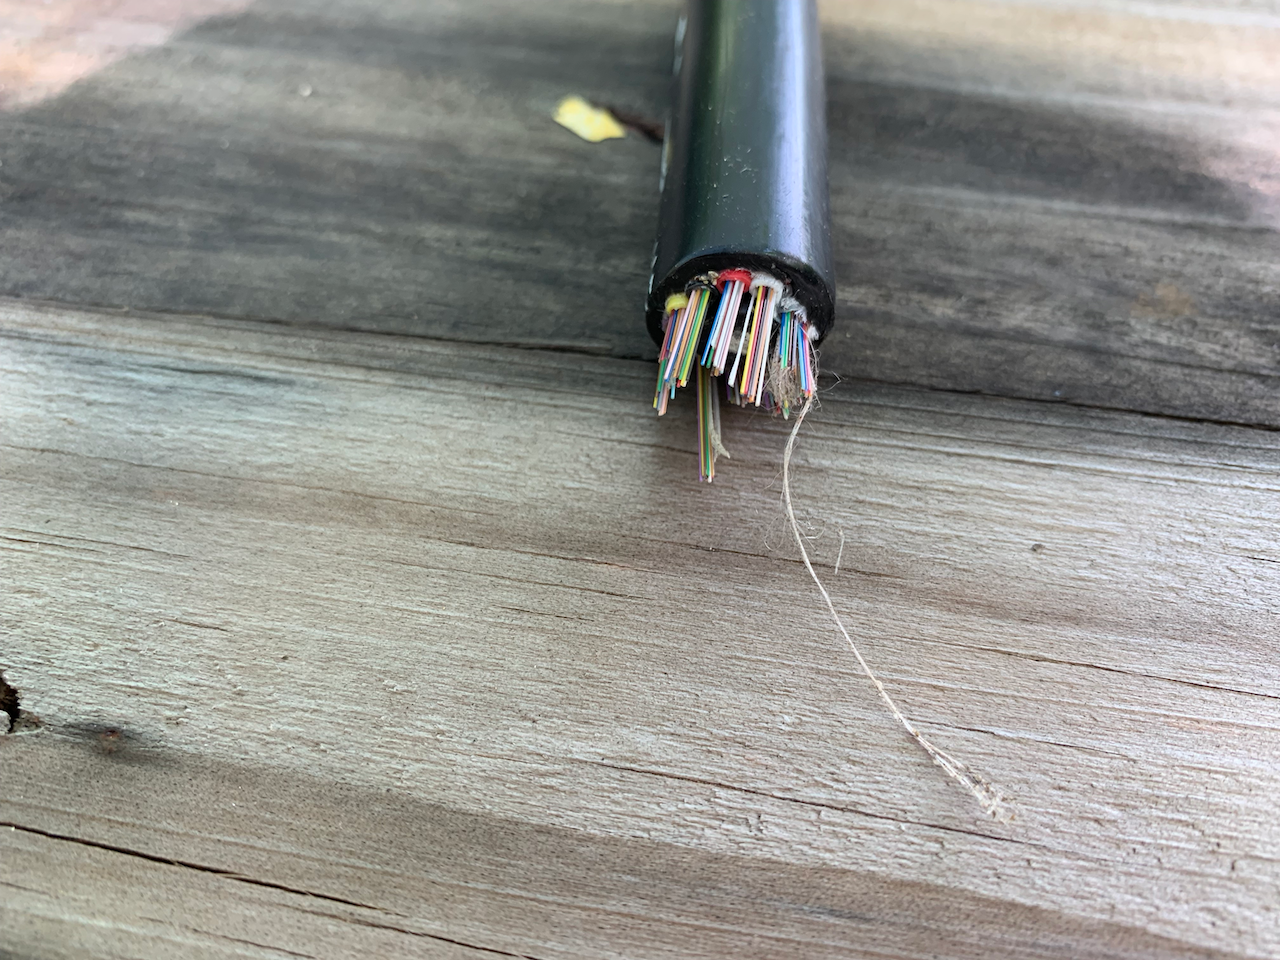 Fiber Optic cabling used on the project has double the fibers needed (for redundancy) and provides a 'future proof' infrastructure for the Resort.